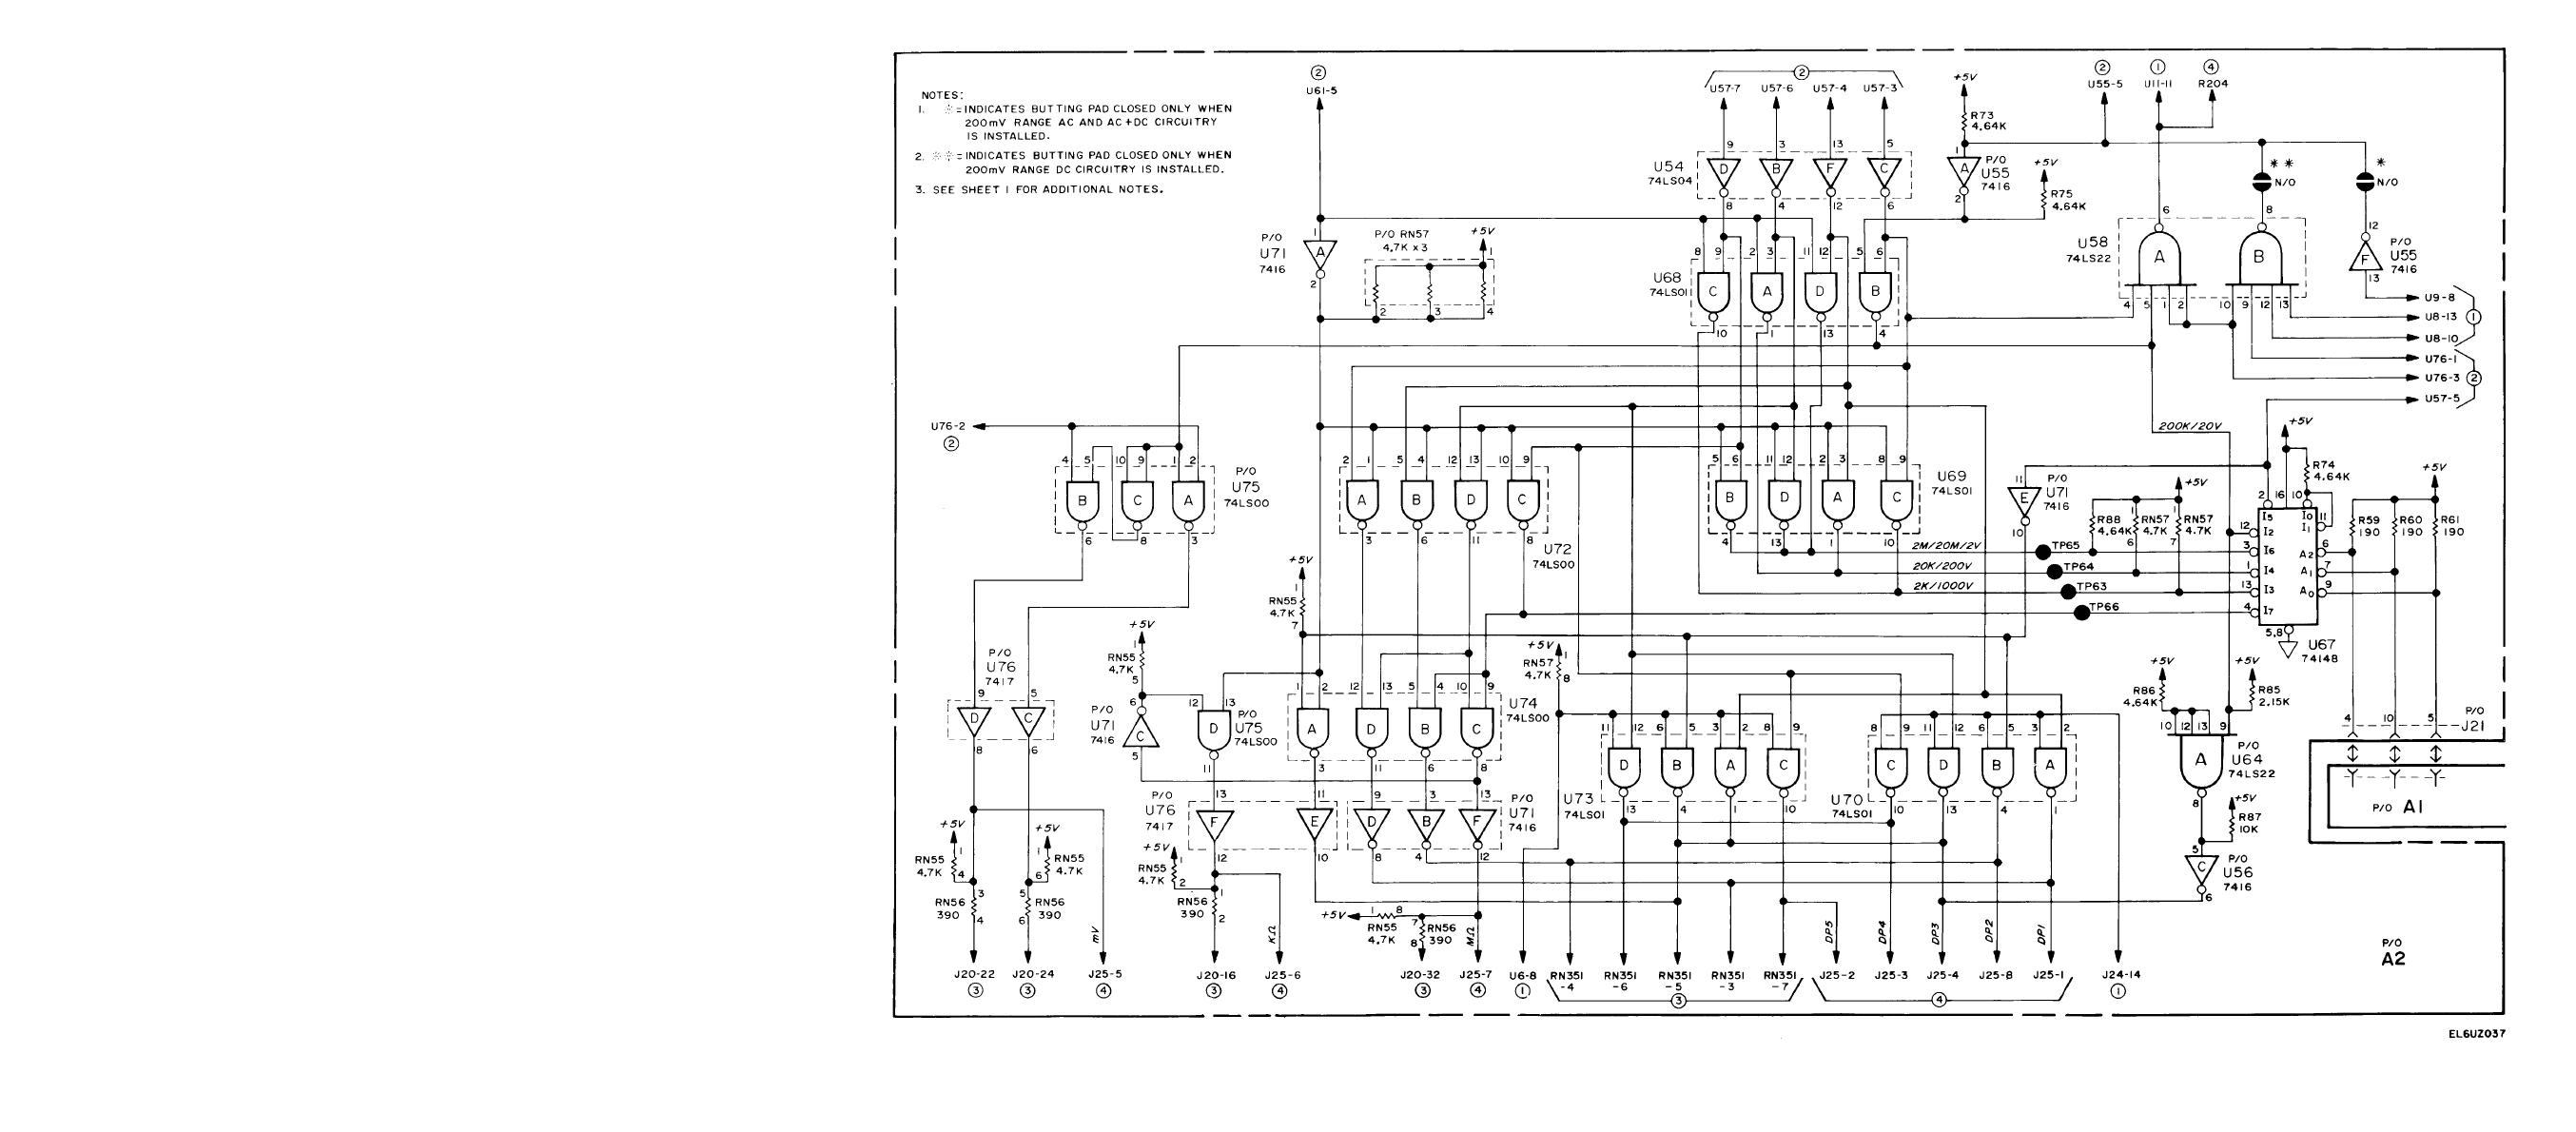 voltmeter schematic diagram